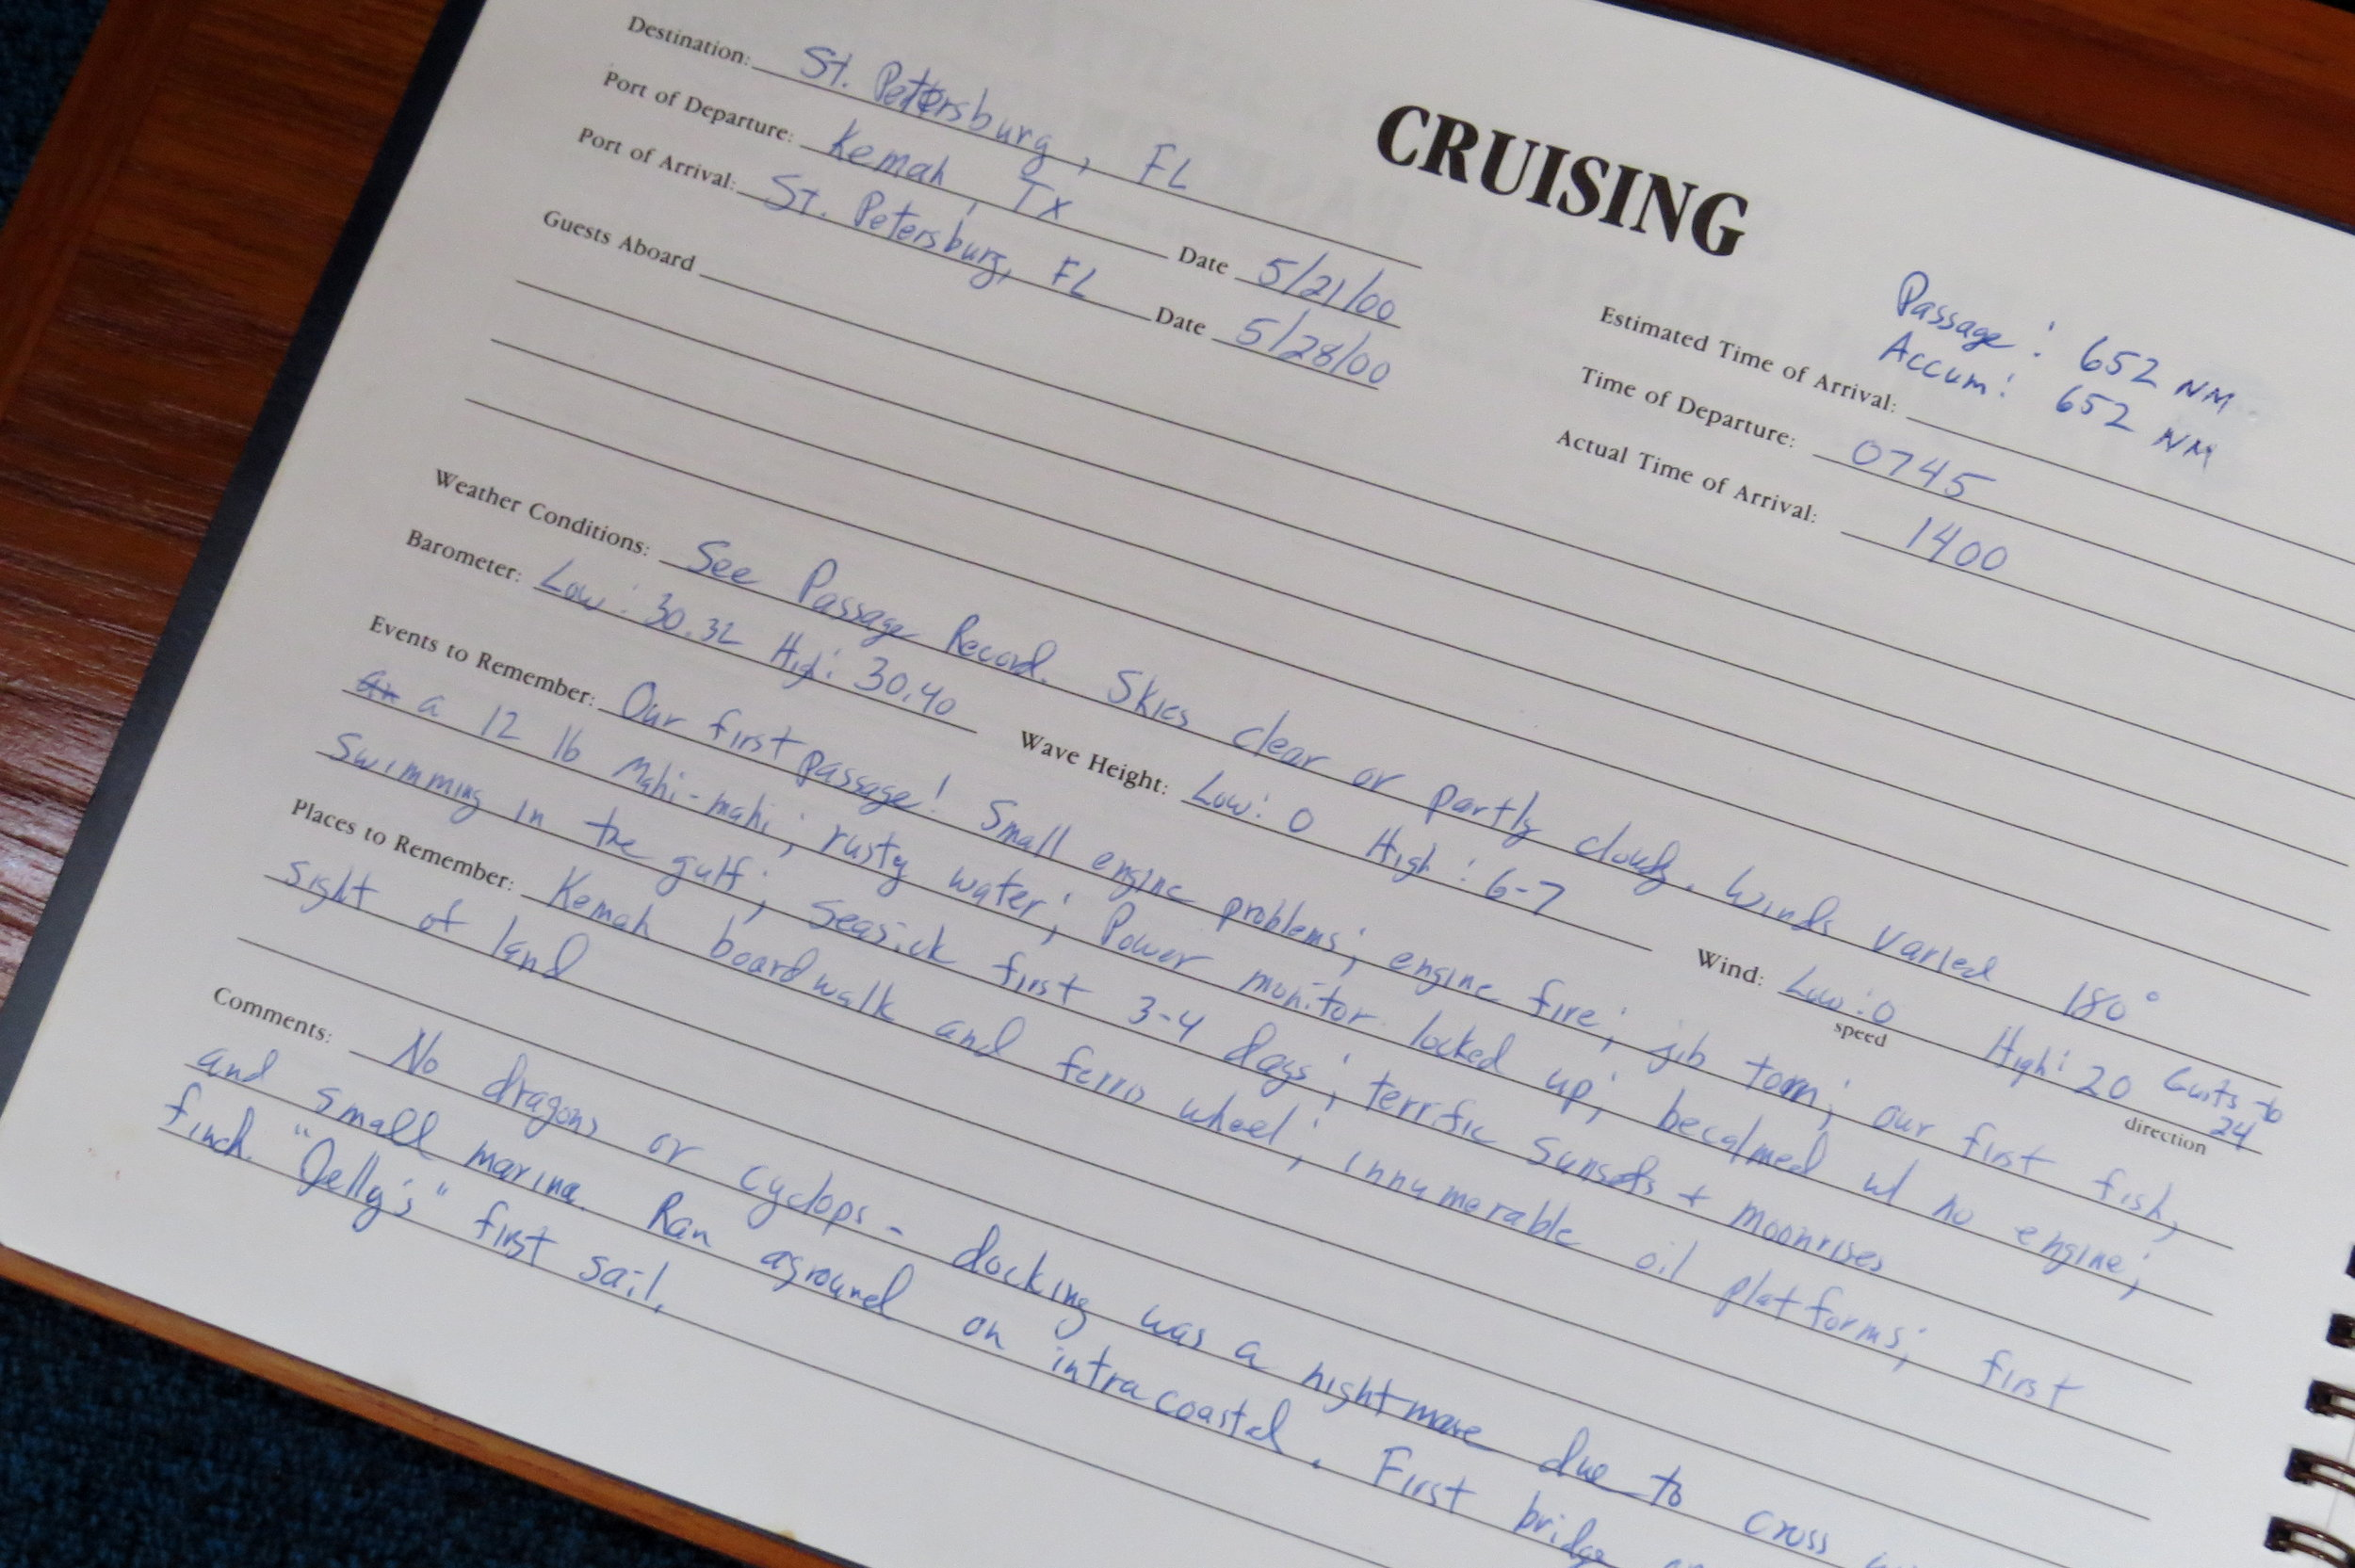 First passage notes indicate the trip across the Gulf of Mexico had its adrenaline moments!